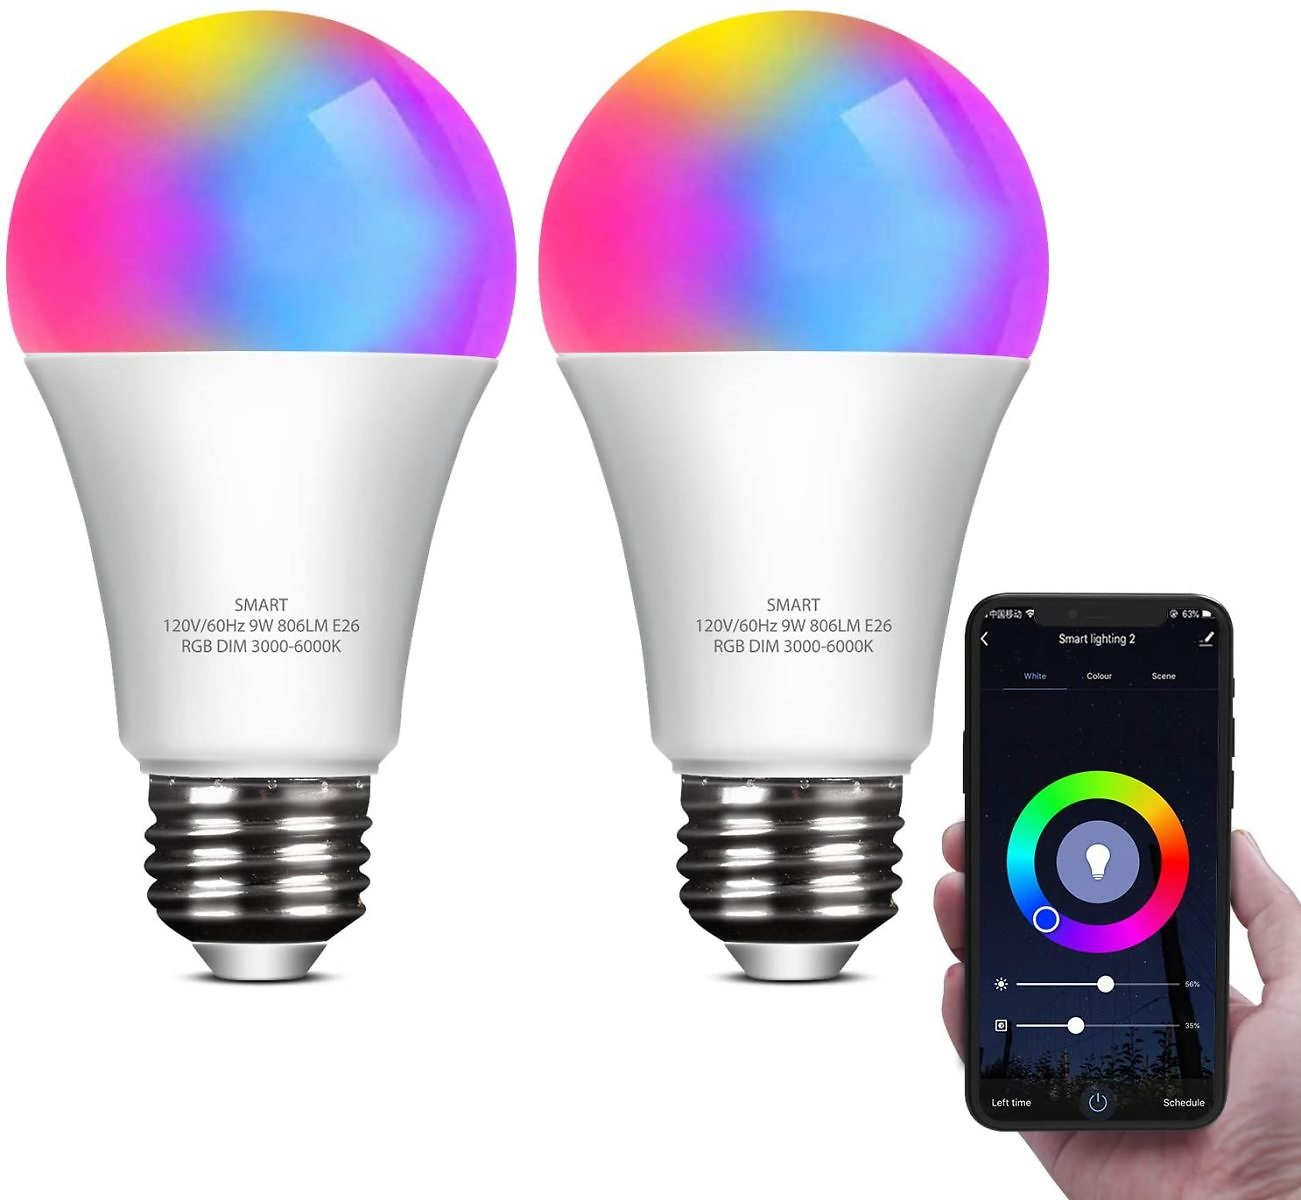 ELECWISH Smart LED Light Bulb Work with Alexa and Google Home A19 E26 9W 806lm Multicolor 2.4 GHz WiFi Dimmable Lights Bulbs Equ